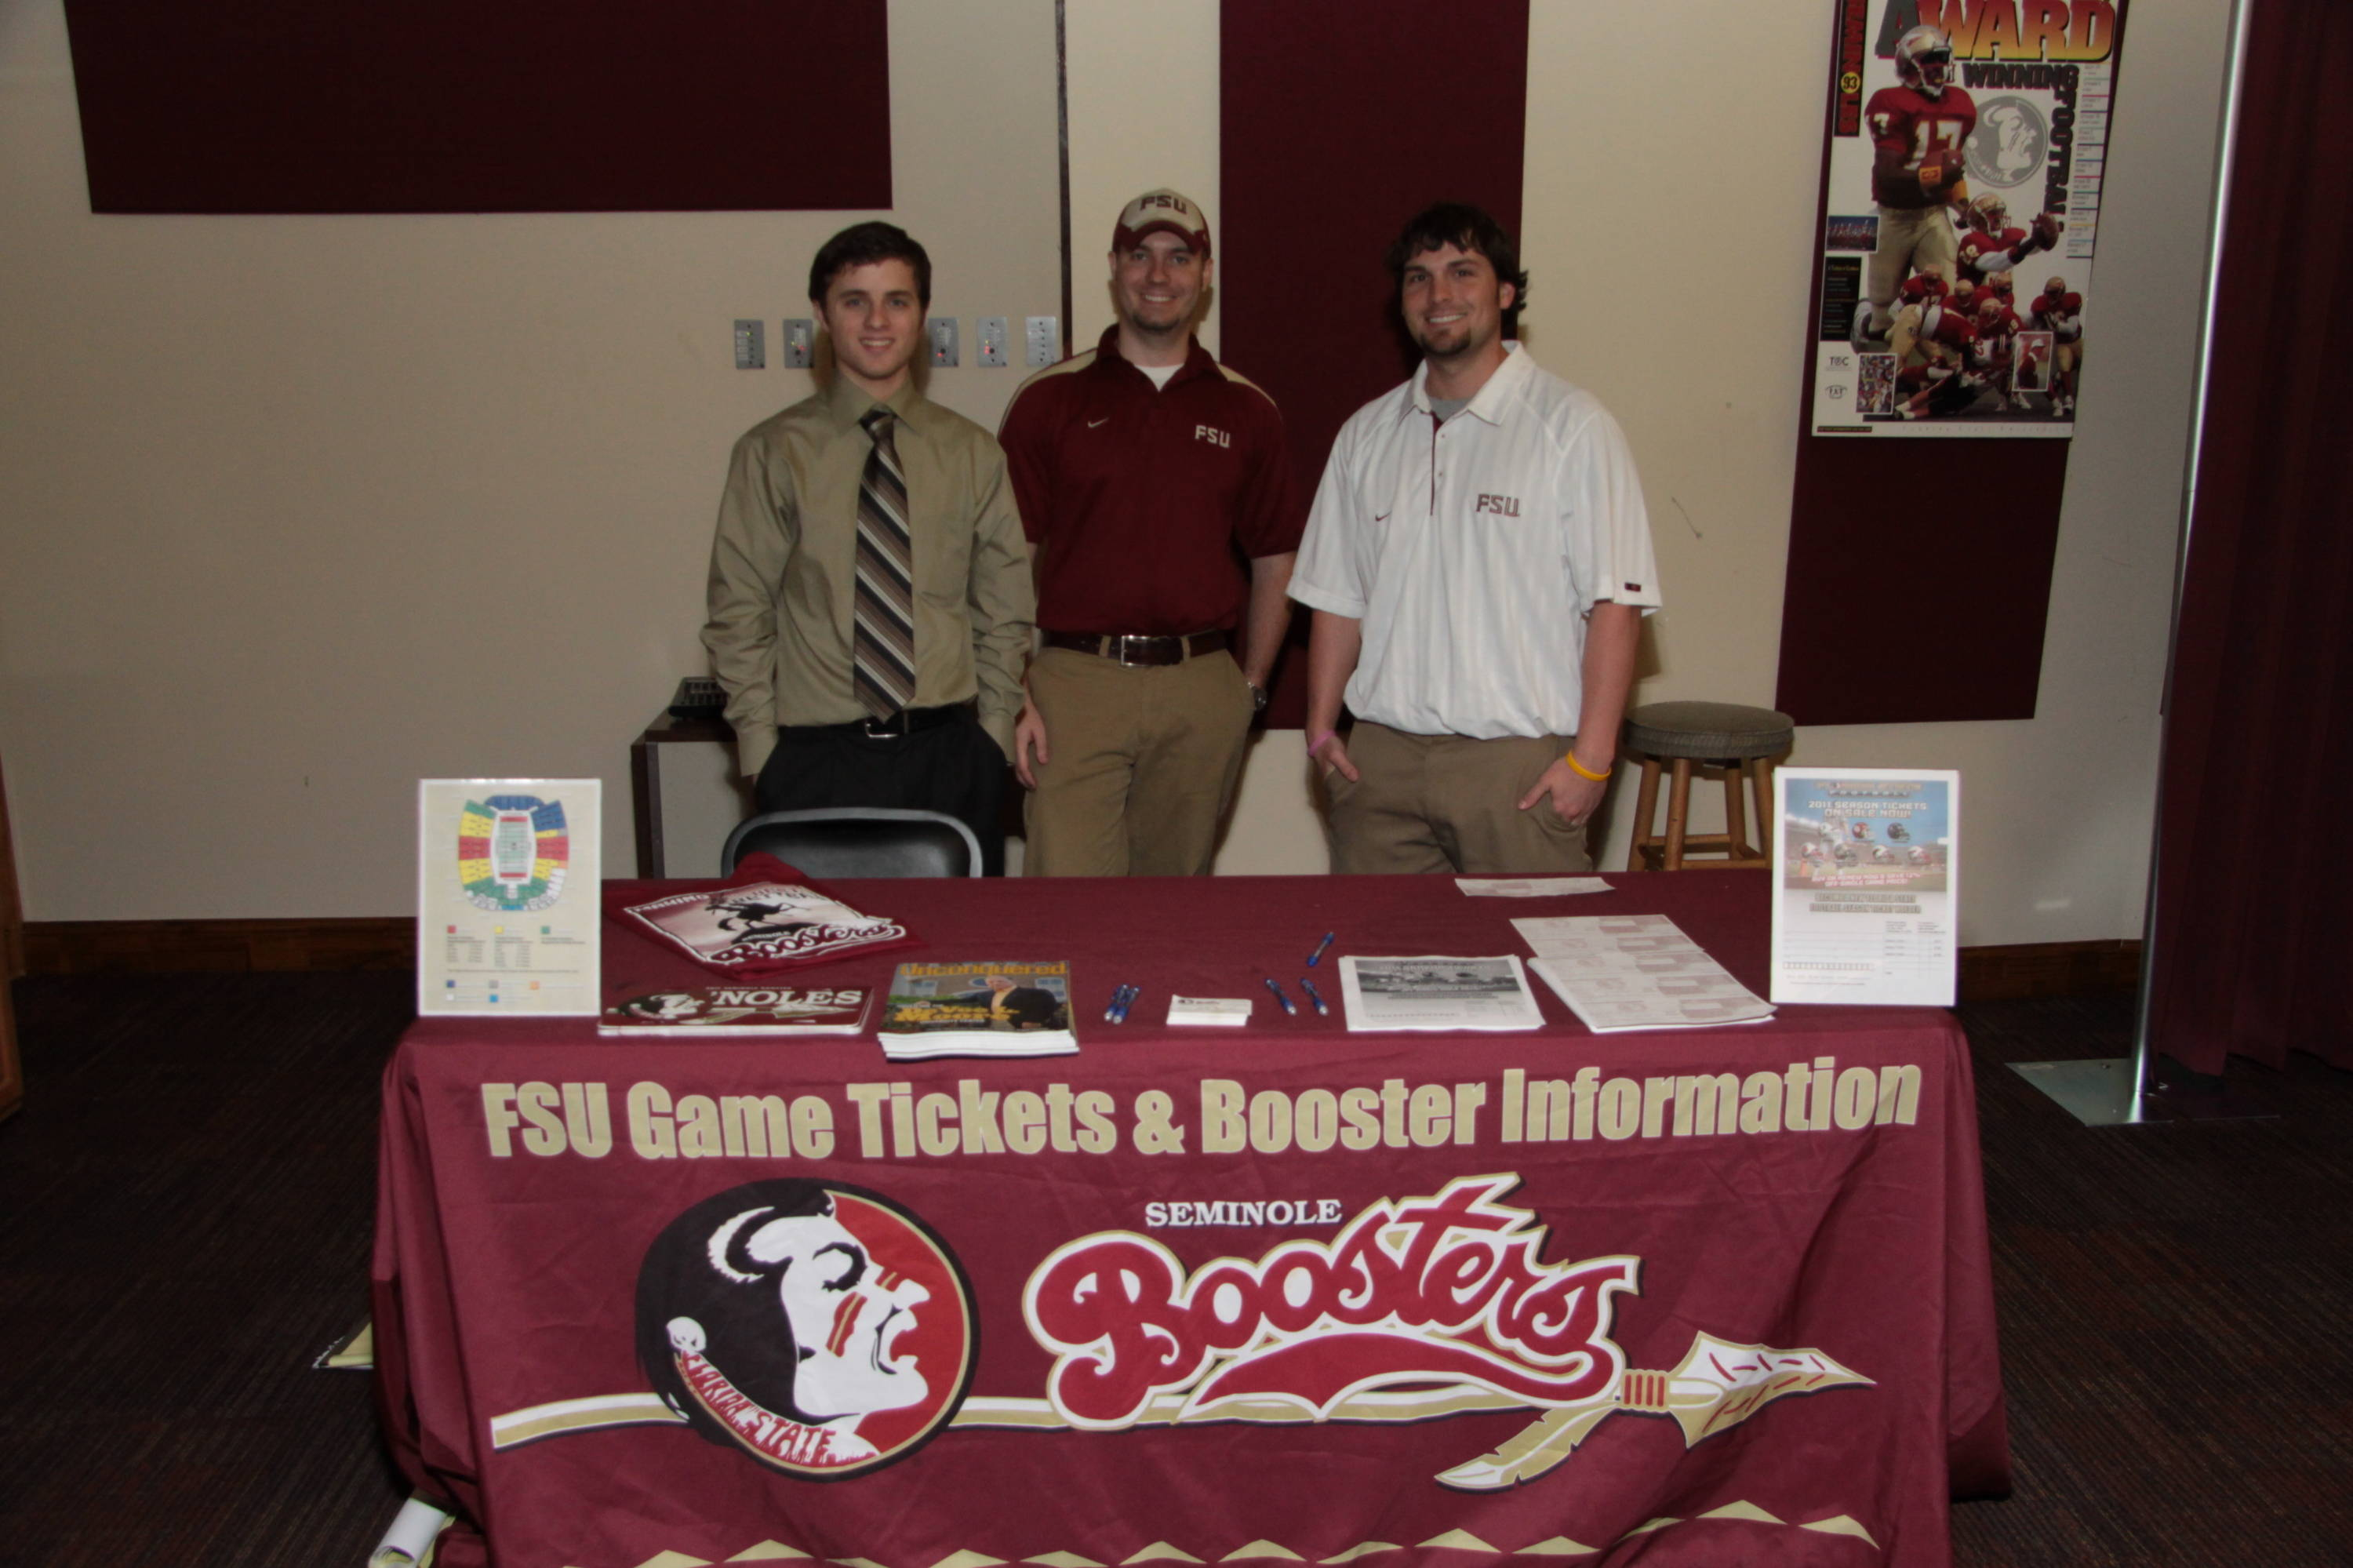 2011 Football War Party: The recruiting party held at the Antique Car Museum in Tallahassee on signing day.